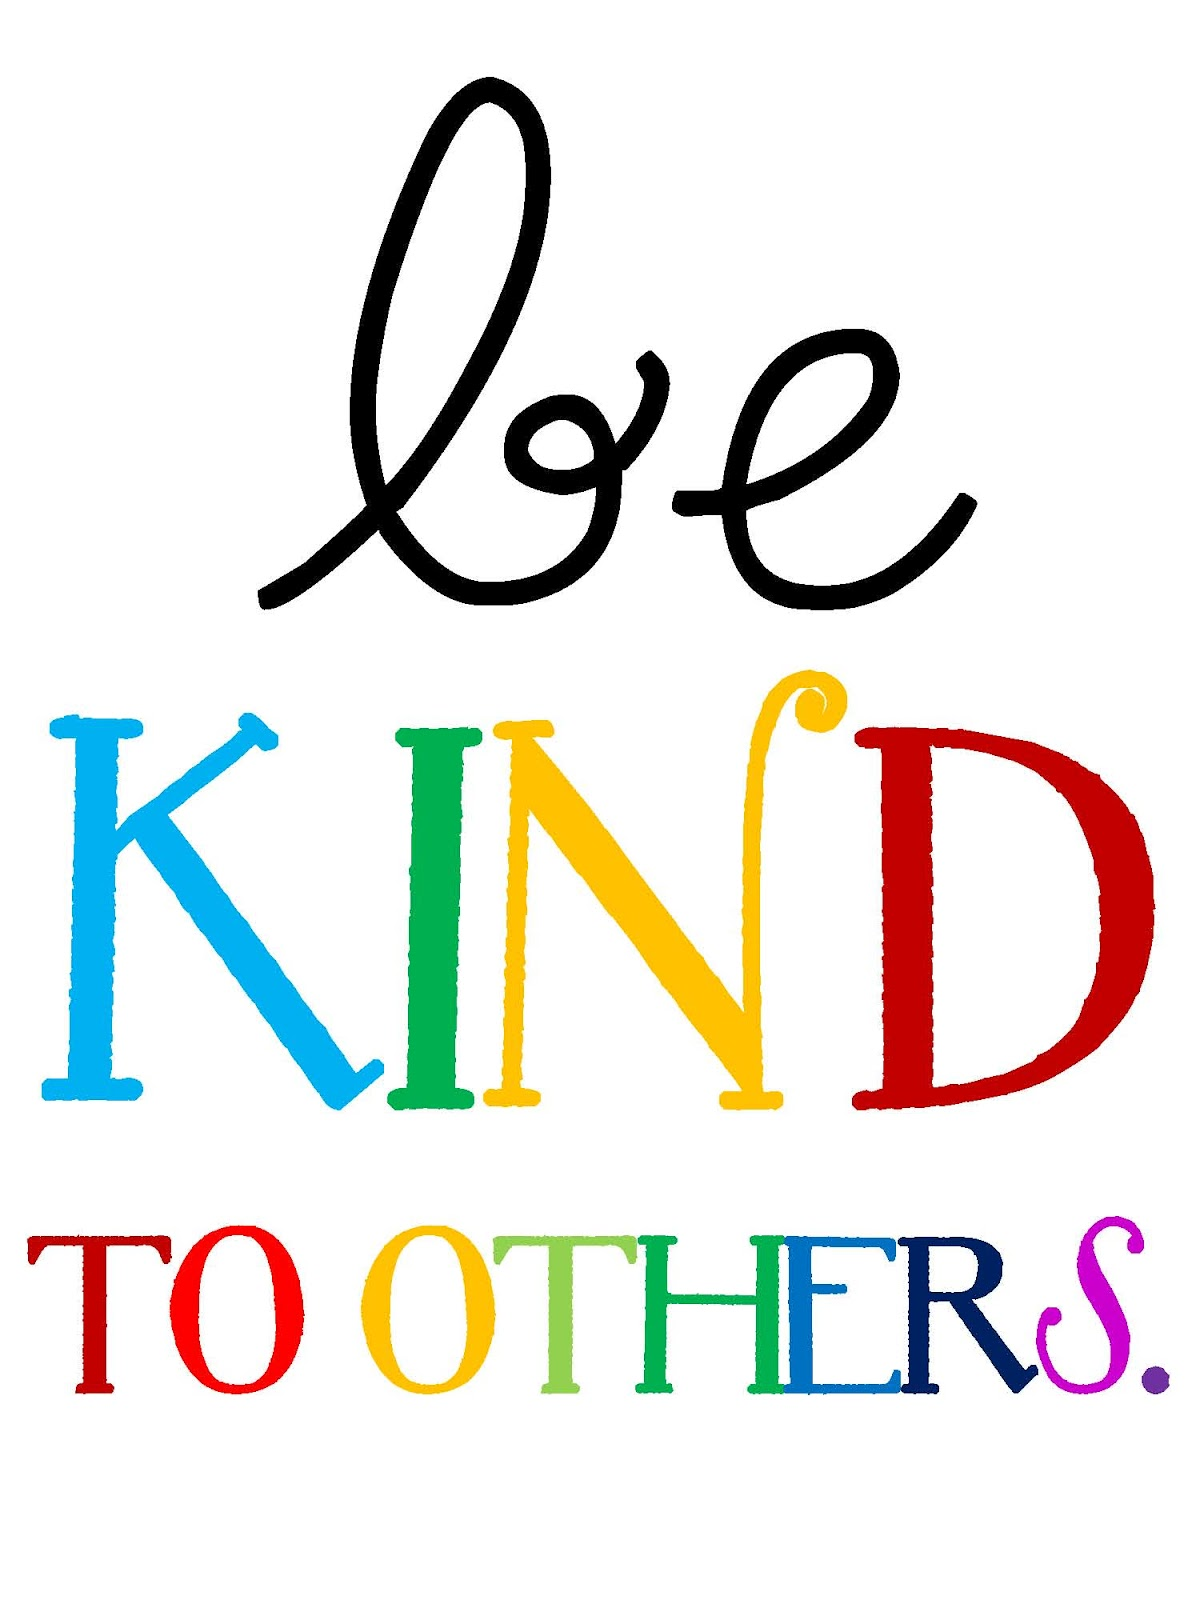 Kindness Clipart - Clipart Kid